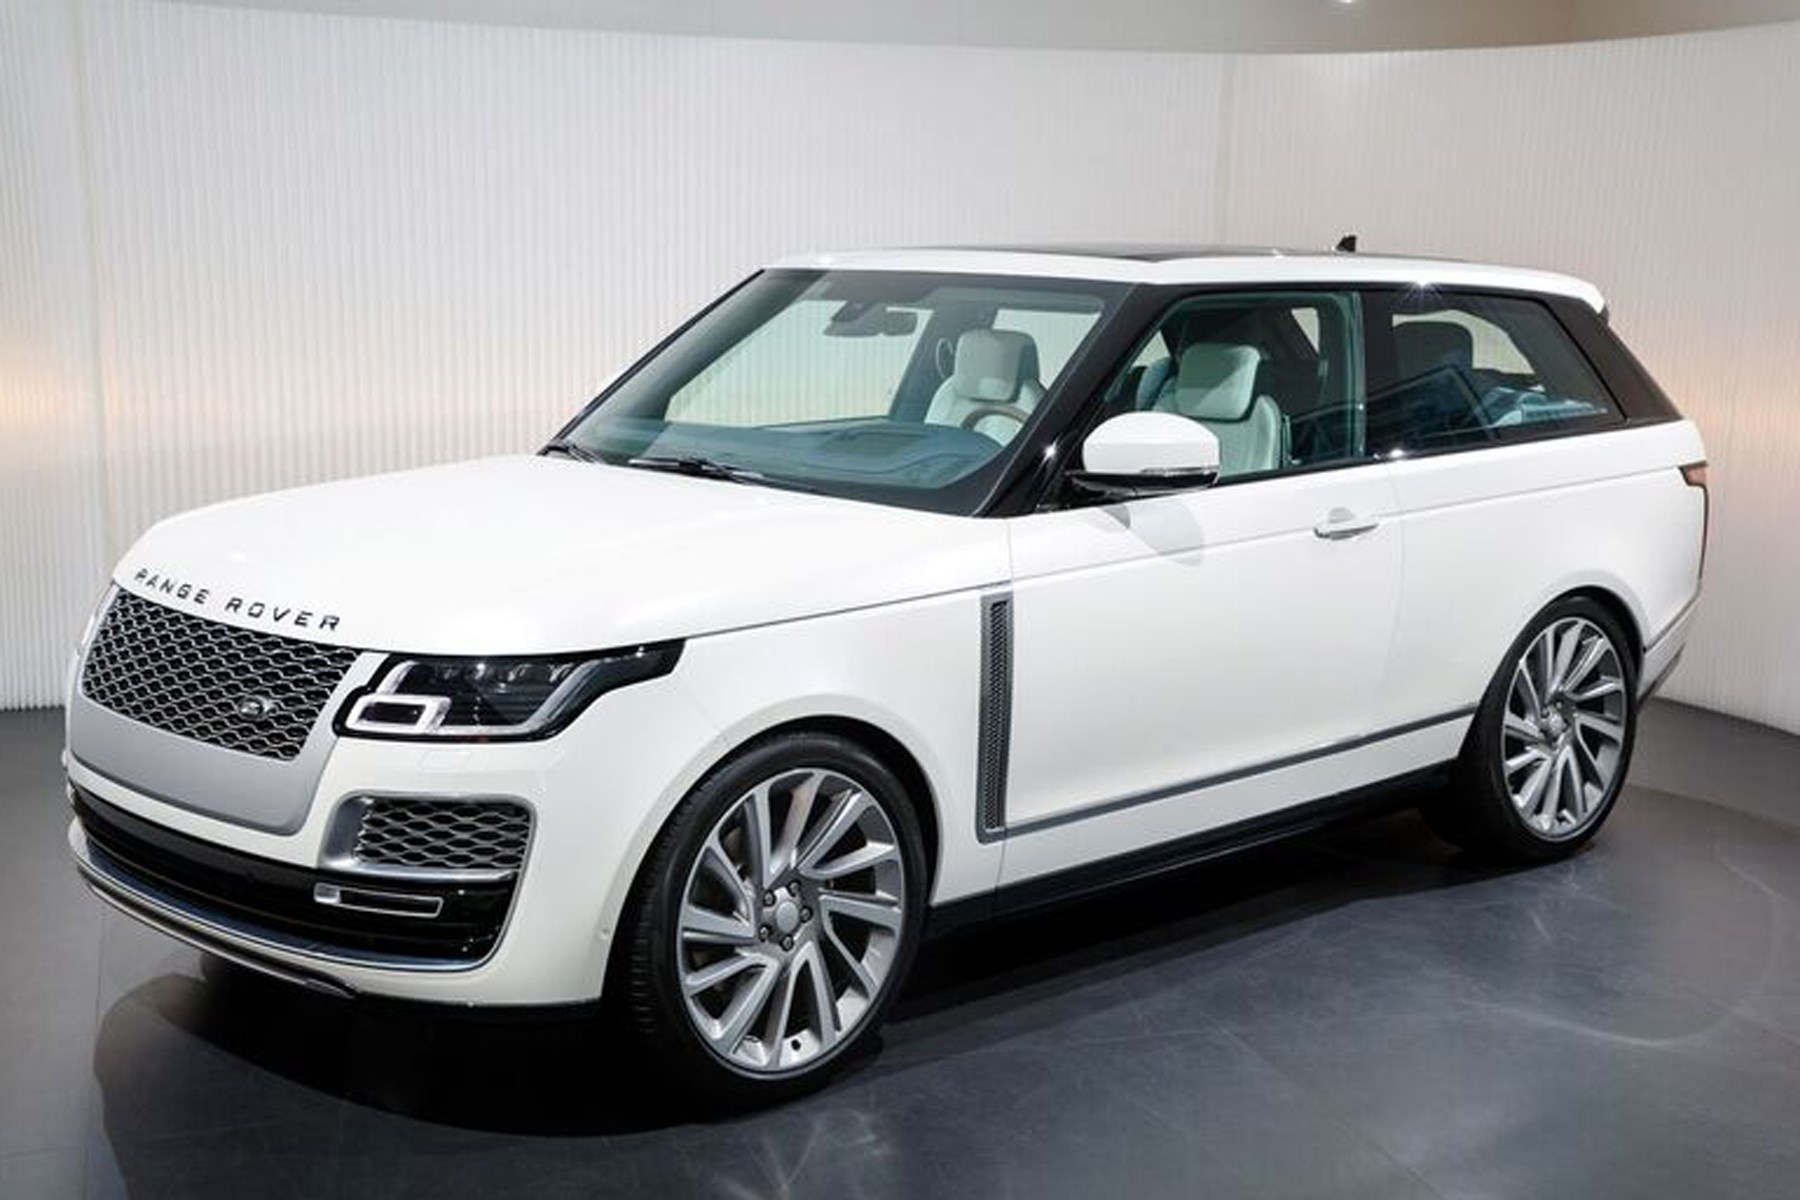 New Range Rover >> New Range Rover Sv Coupe News Pictures Specs Prices Car Magazine